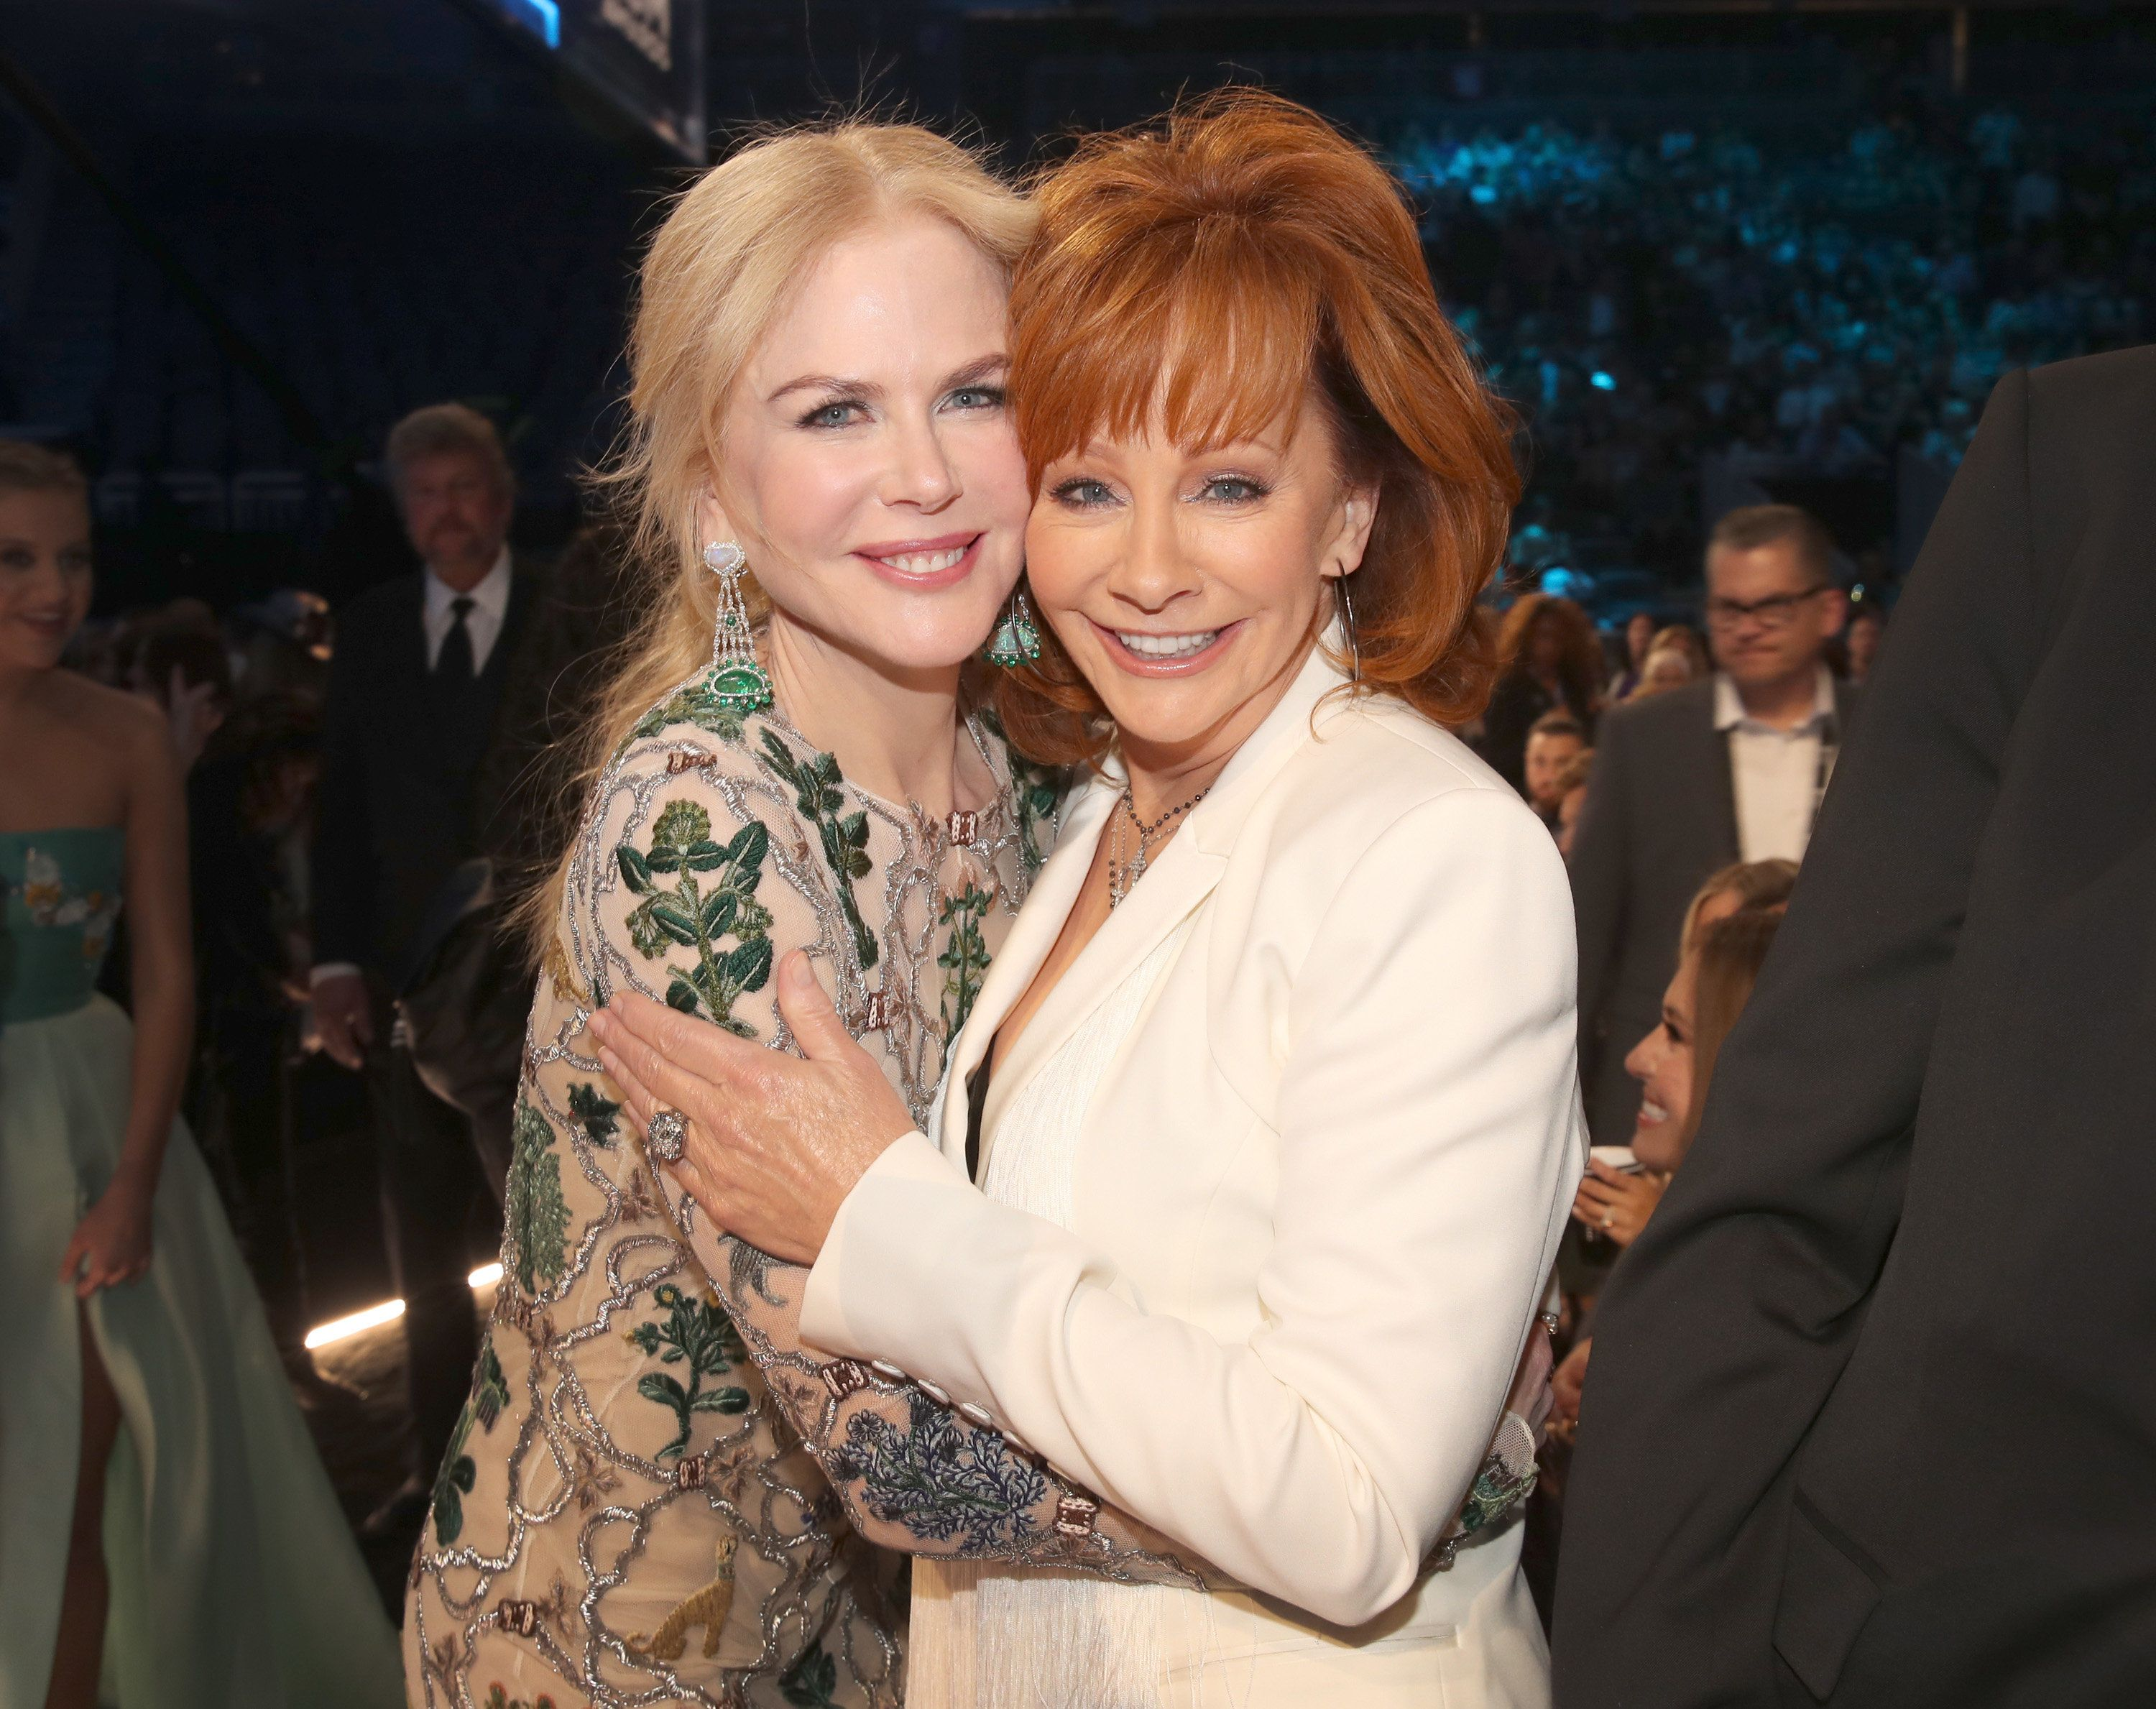 LAS VEGAS, NV - APRIL 02:  Actor Nicole Kidman (L) and music artist Reba McEntire during the 52nd Academy Of Country Music Awards at T-Mobile Arena on April 2, 2017 in Las Vegas, Nevada.  (Photo by Chris Polk/ACMA2017/Getty Images for ACM)